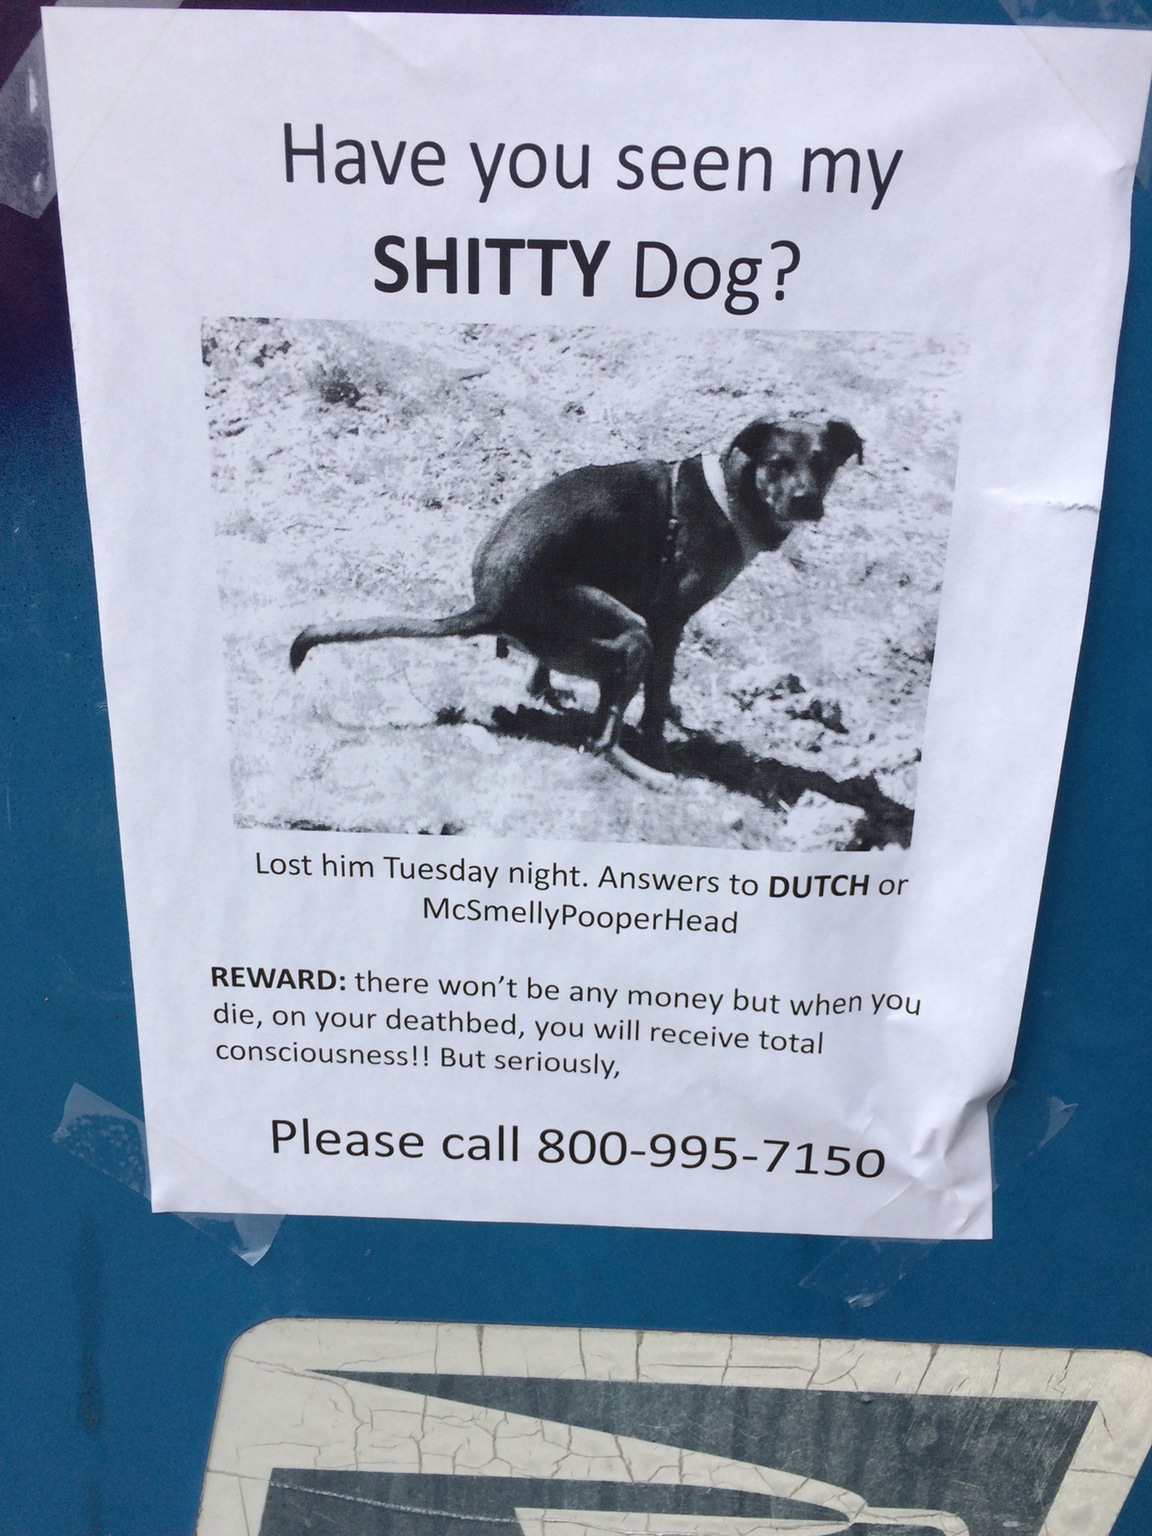 Have you seen my shitty dog?